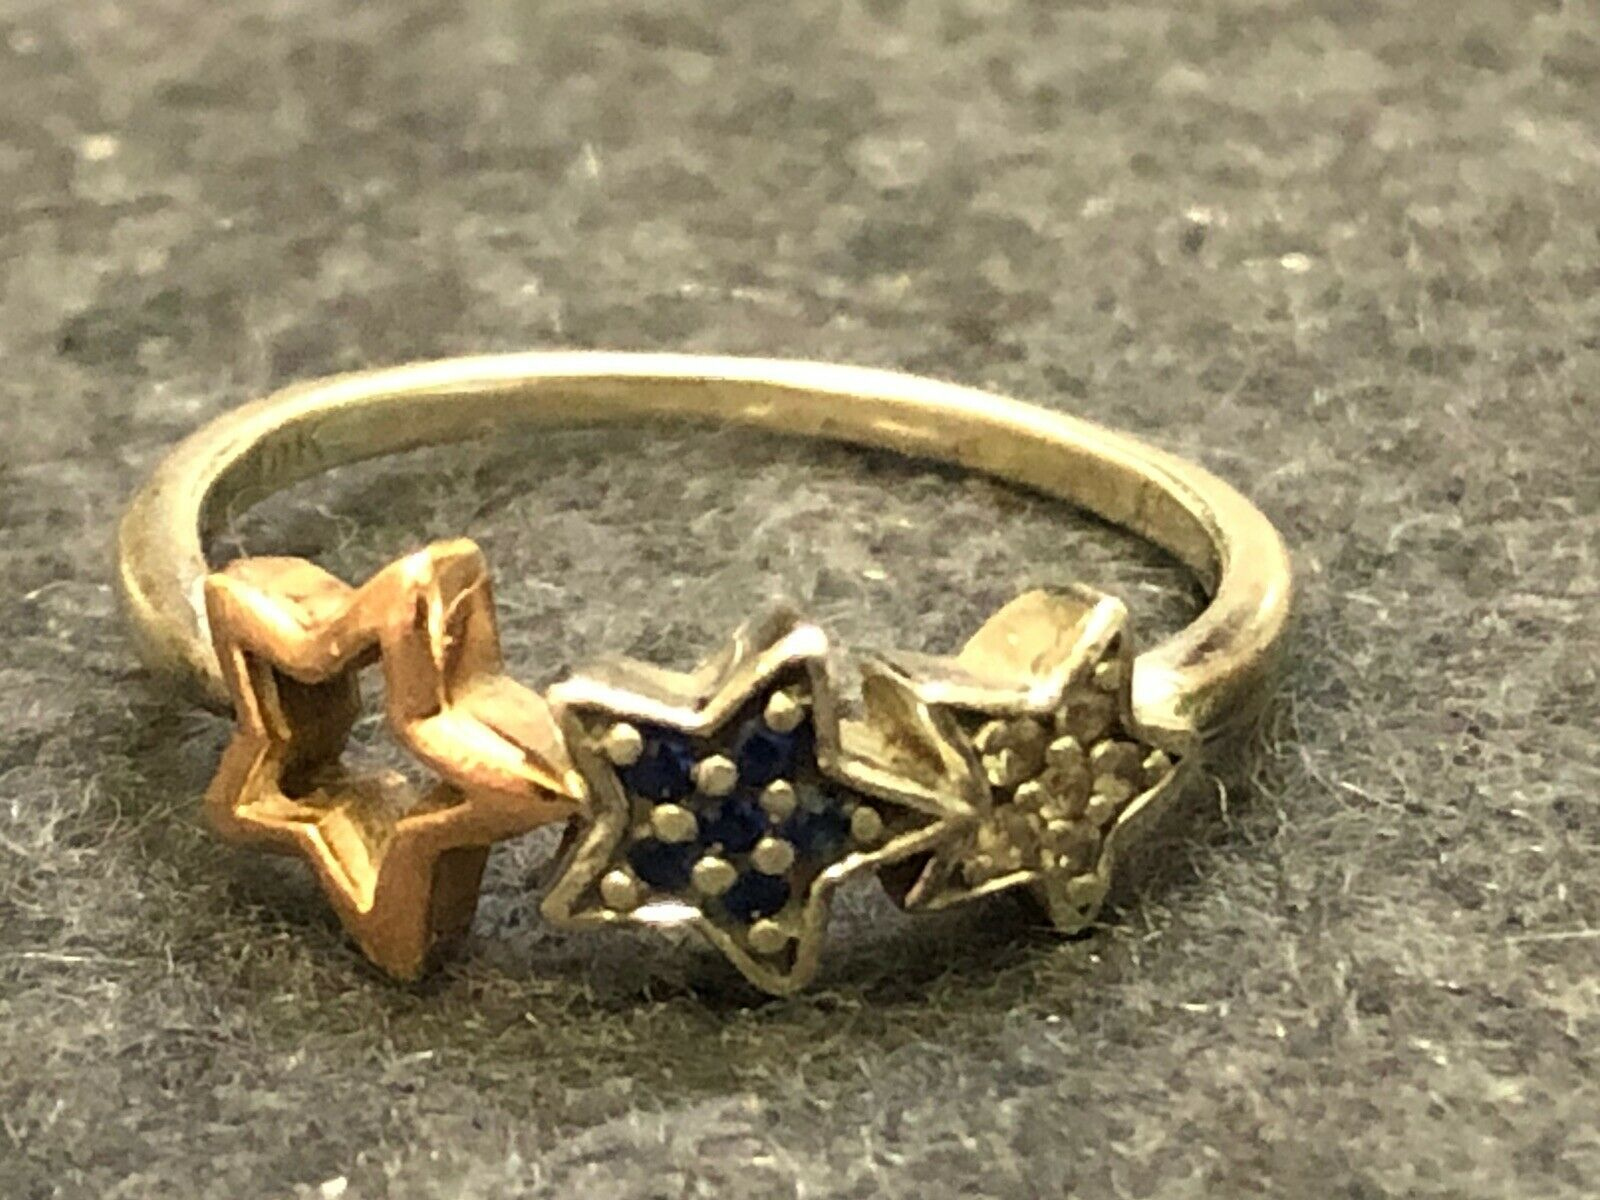 Vintage Sterling Silver 10k Gold Star Ring Vintage Ring Ideas Of Vintage Ring Vintagering Ring Jewelry 0 The Post Vintage Sterling Silver 10k Gol In 2020